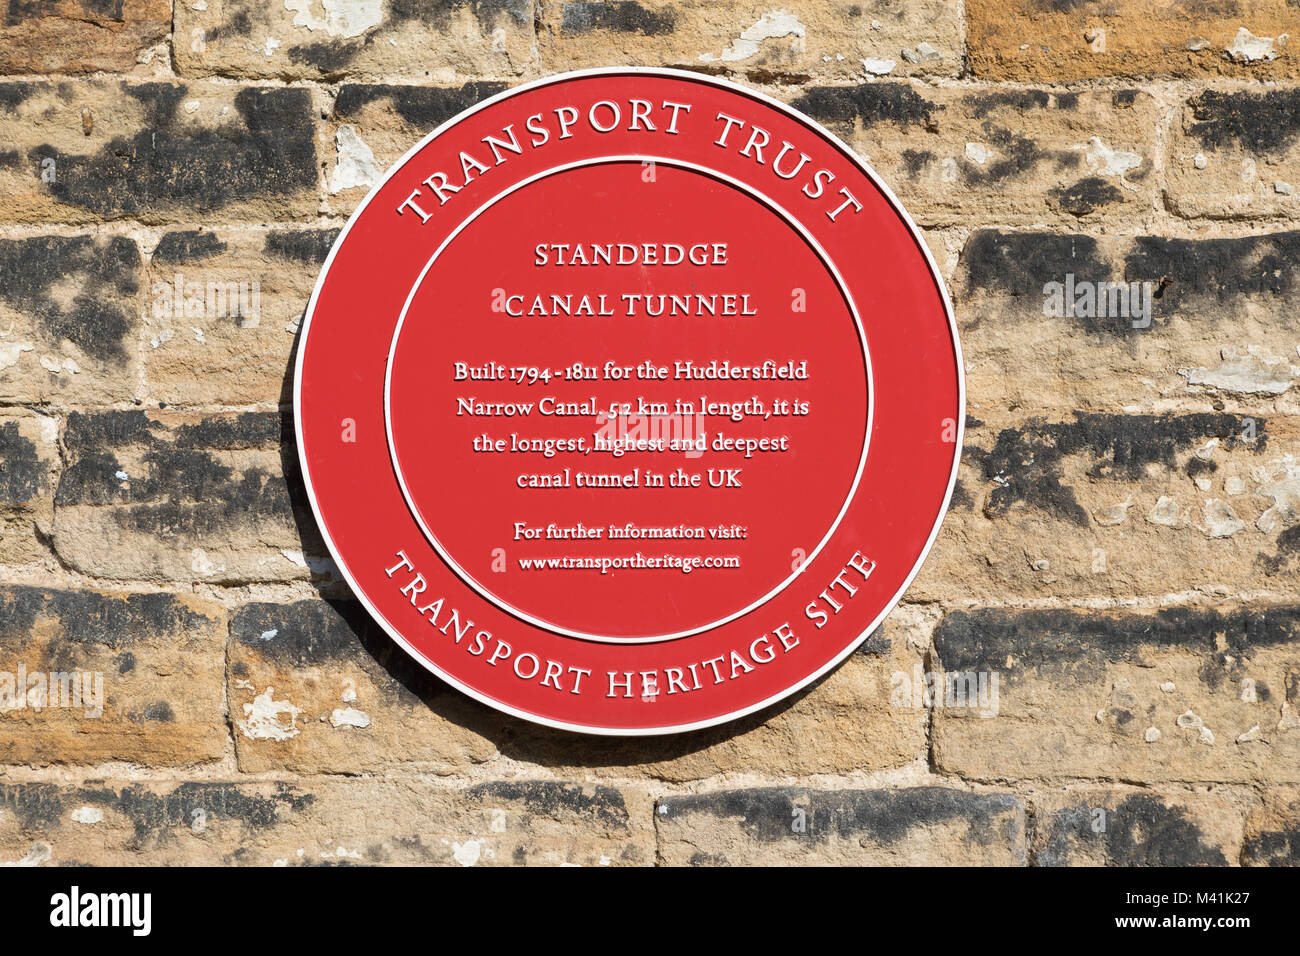 Signage at the  Standedge tunnel on the Huddersfield Narrow canal - Stock Image